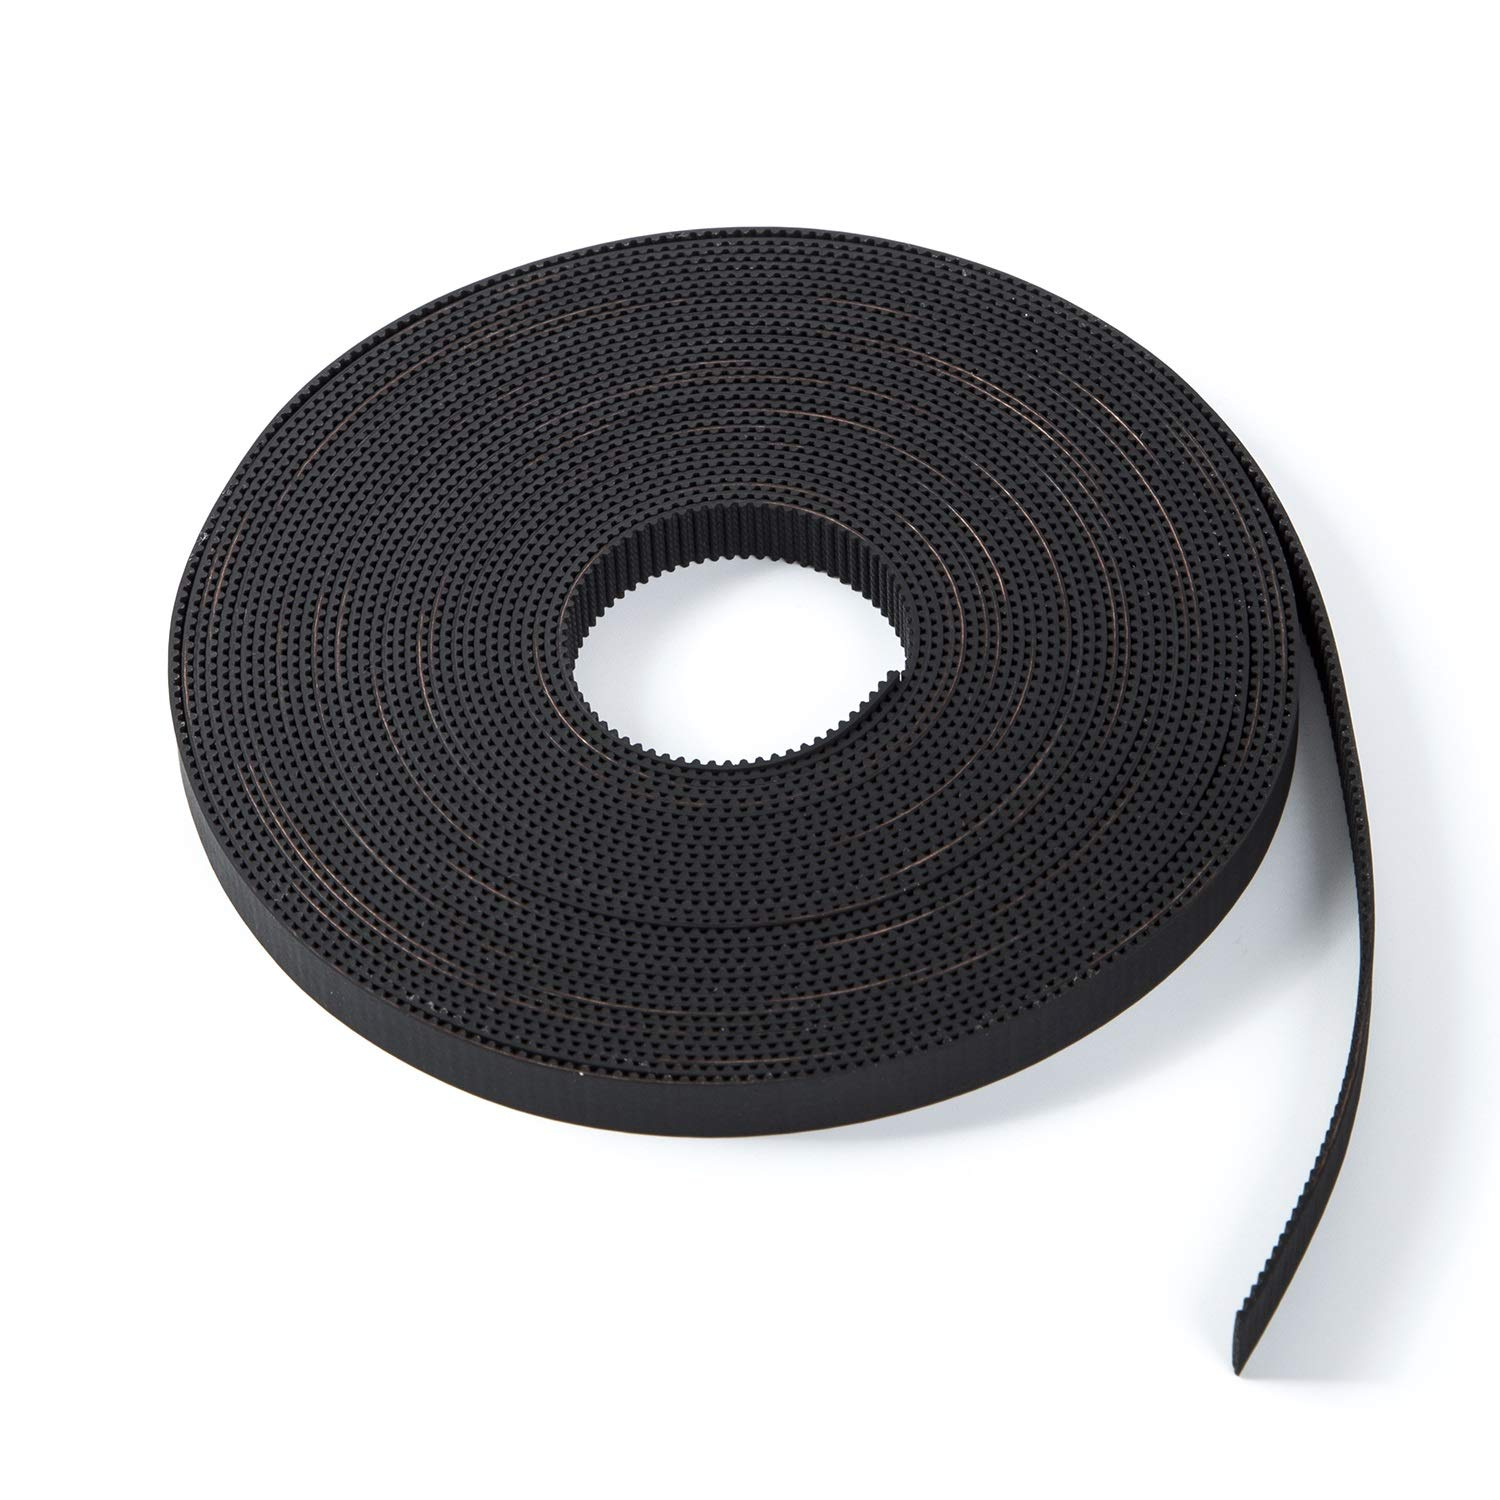 S.Y.M 3D Printer Printer Accessories Pen Timing Belt 10mm Width Rubber Fiberglass for 3D Printer (Opened-Belt) 10M by S.Y.M (Image #1)